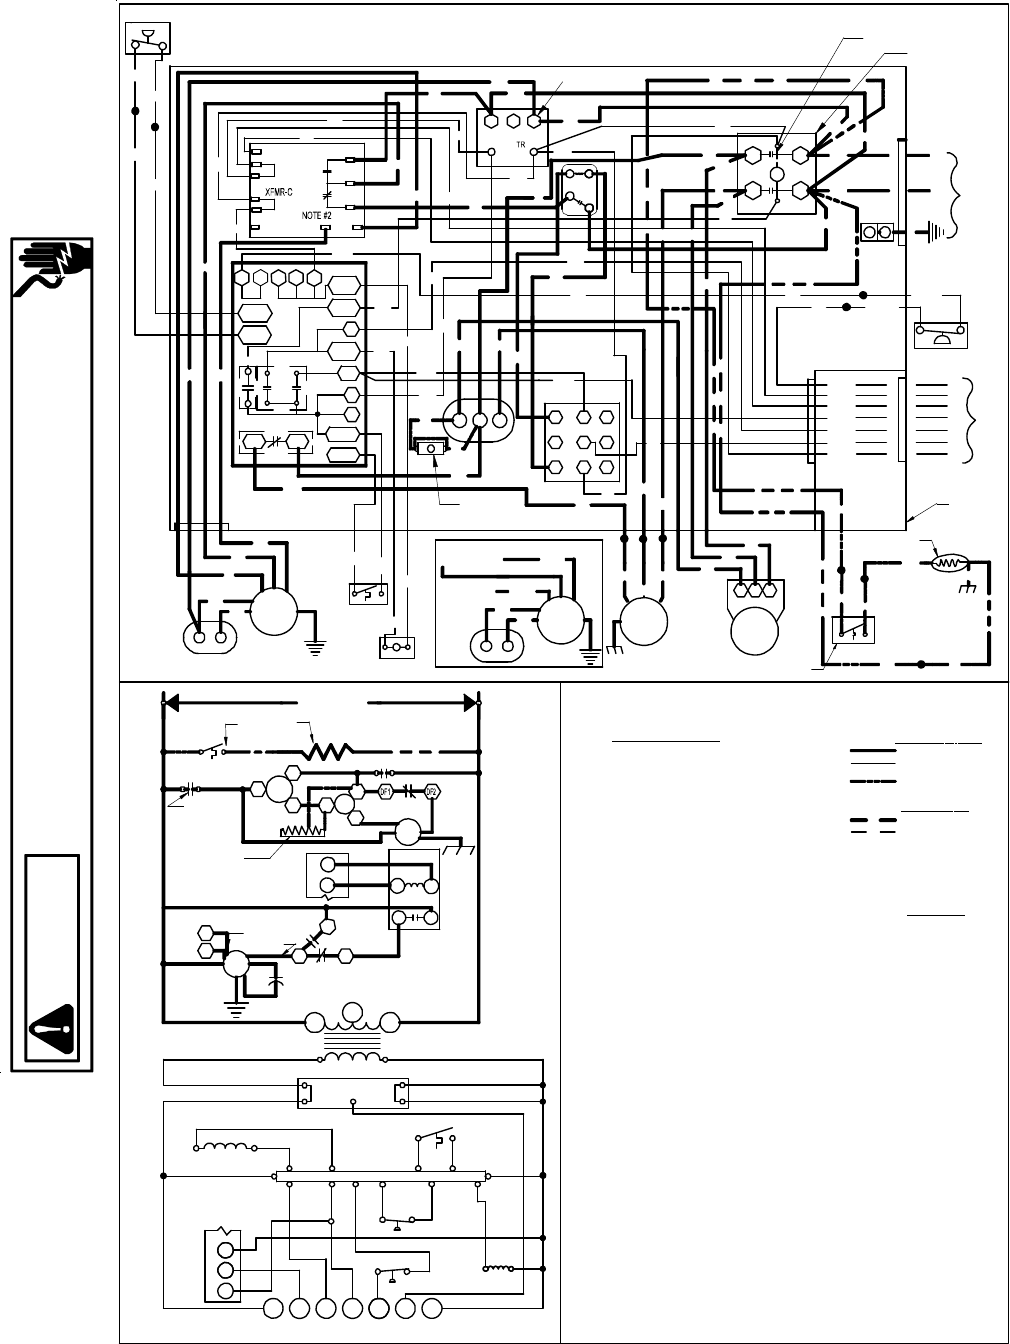 Heat       Pump       Wiring       Diagram        Diagram    Stream